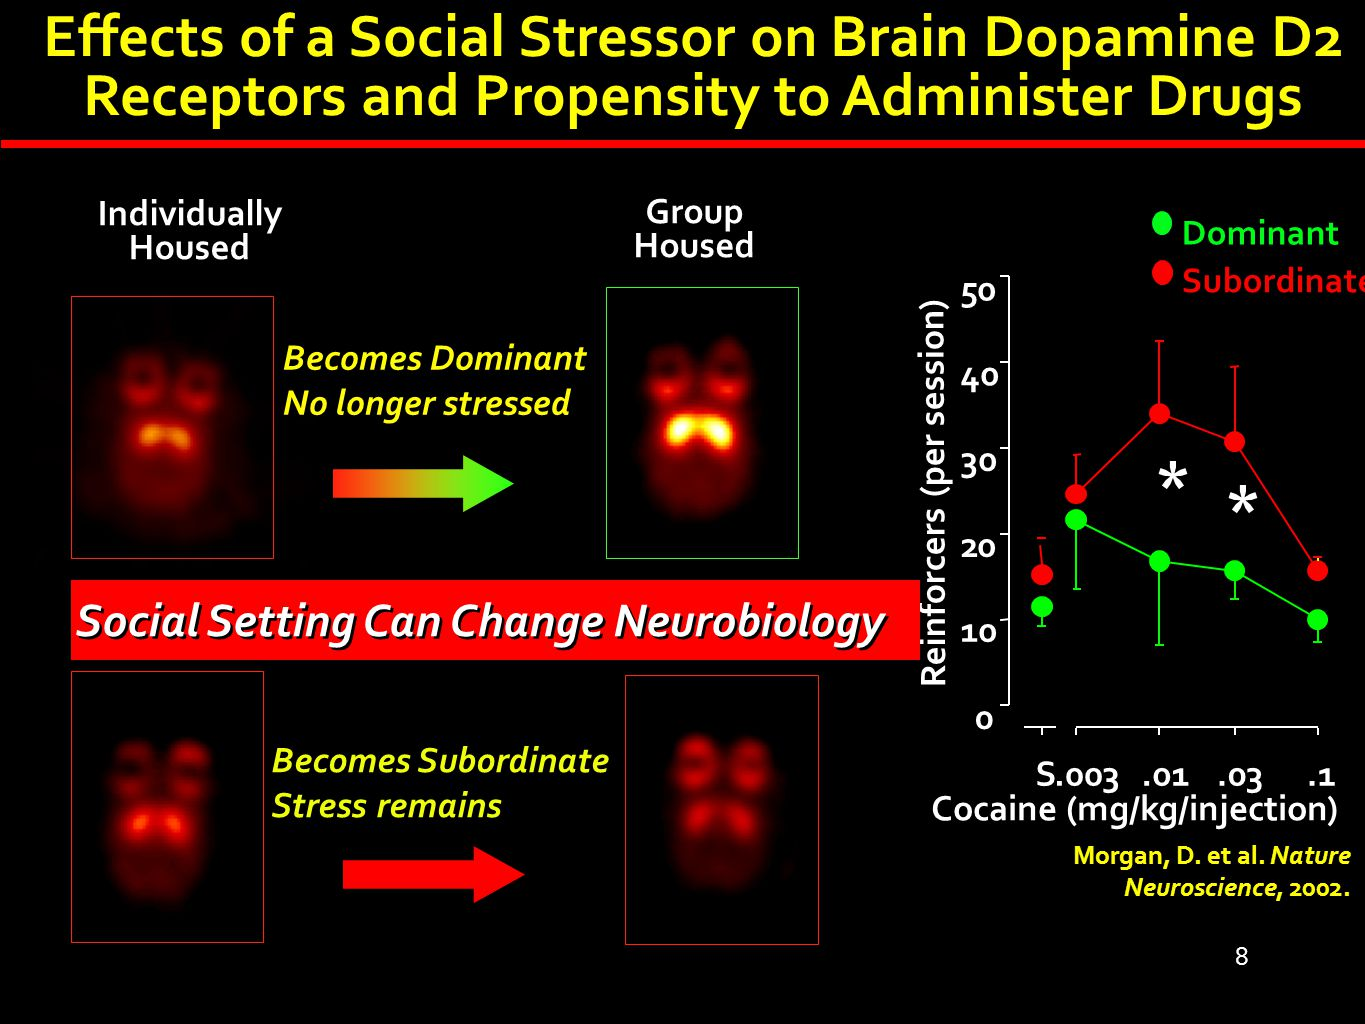 8 Individually Housed Morgan, D. et al. Nature Neuroscience, 2002. * * S.003.01.03.1 0 10 20 30 40 50 Reinforcers (per session) Cocaine (mg/kg/injecti